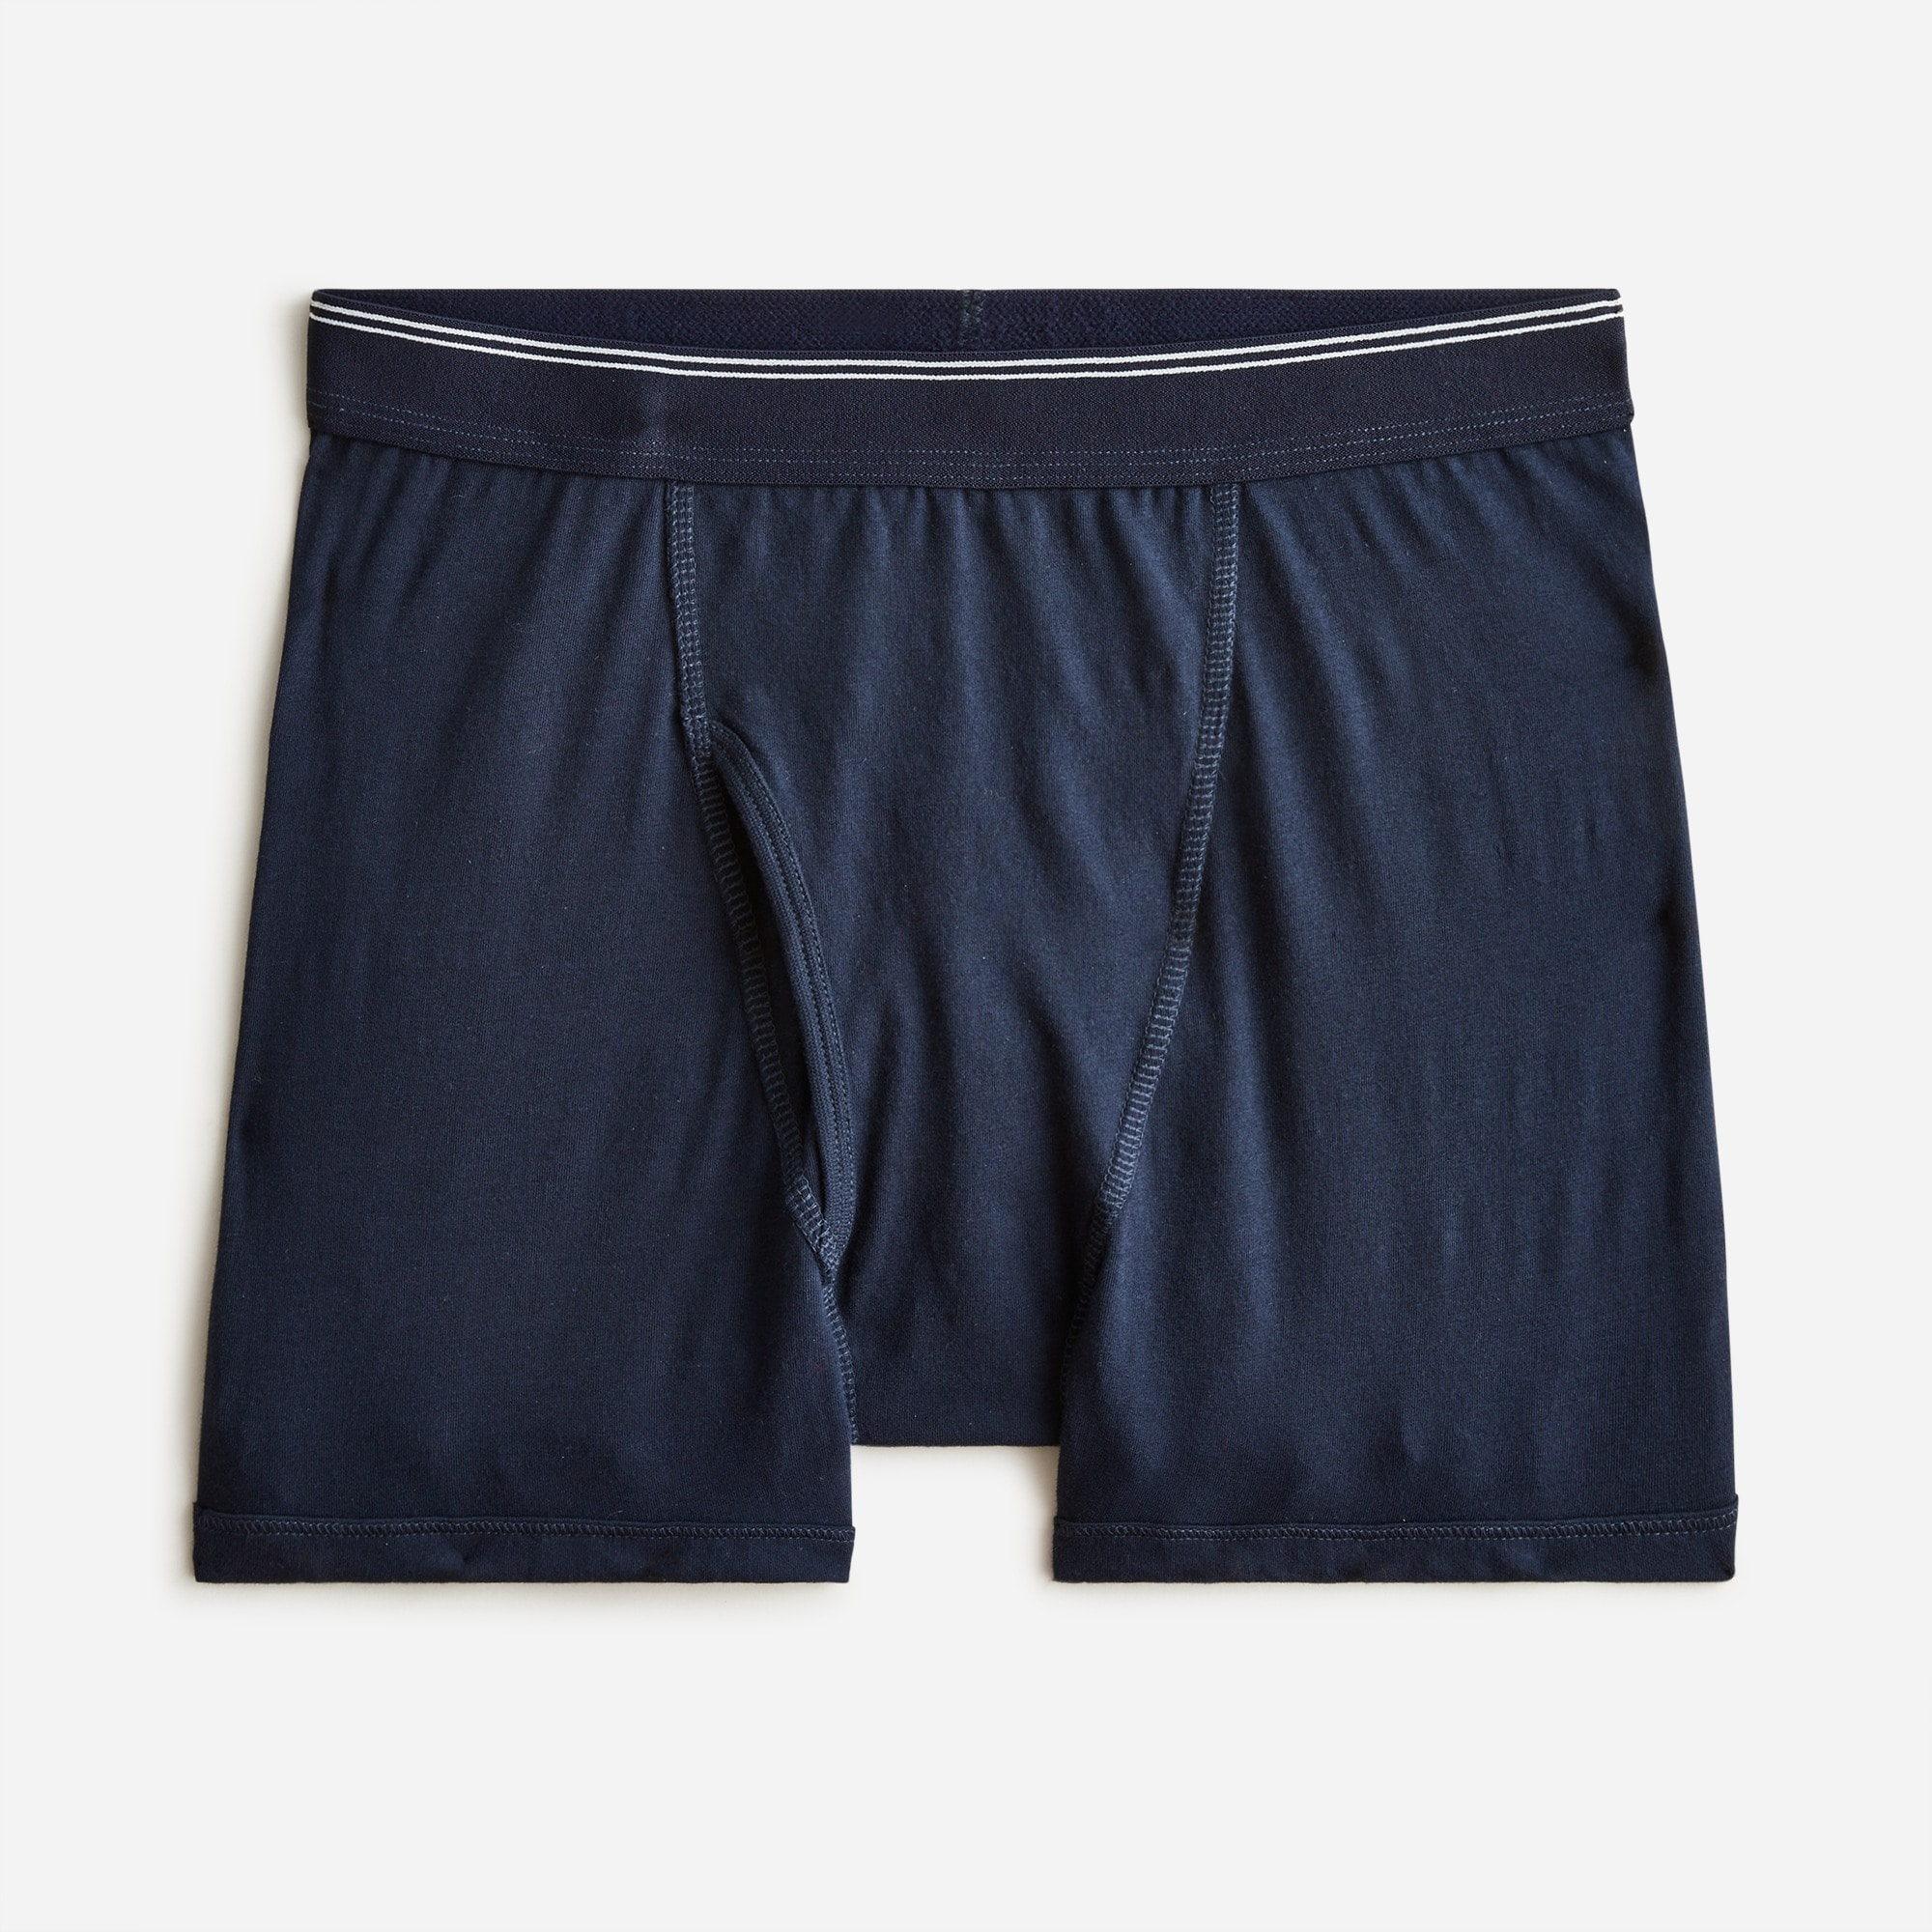 mens Stretch boxer briefs